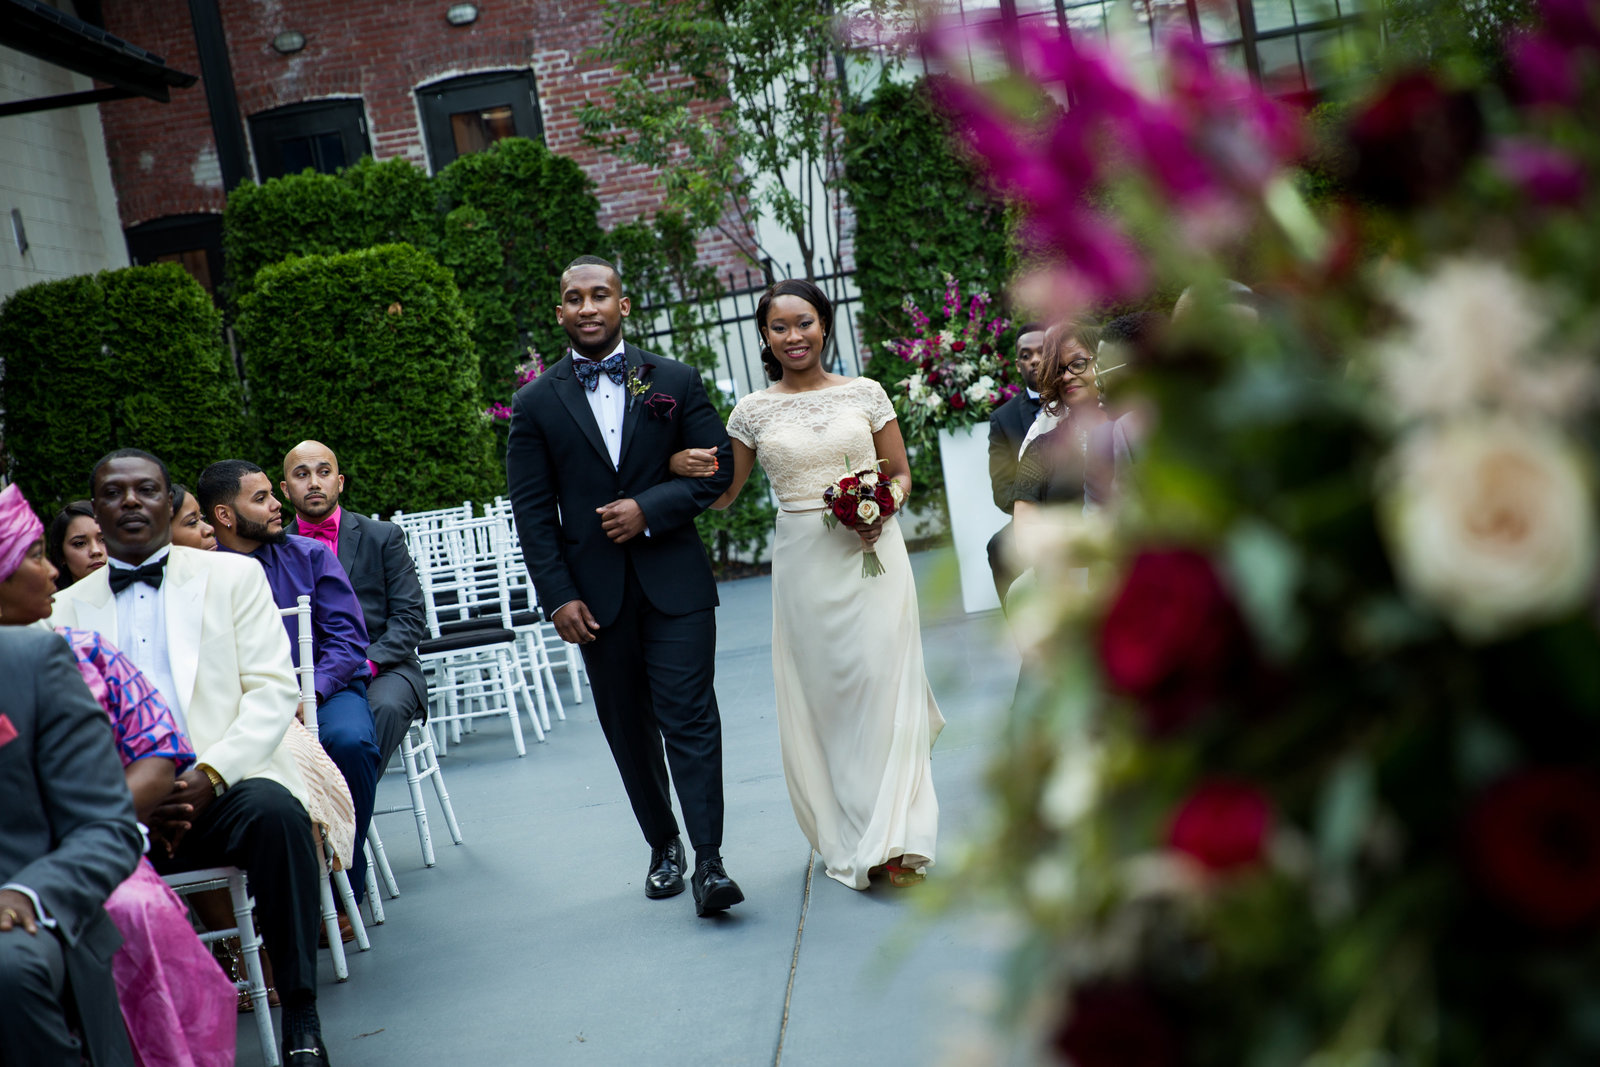 Wedding ceremony at Vie Philadelphia floral design by Carl Alan Floral  photos  by Greg Davenport Photography